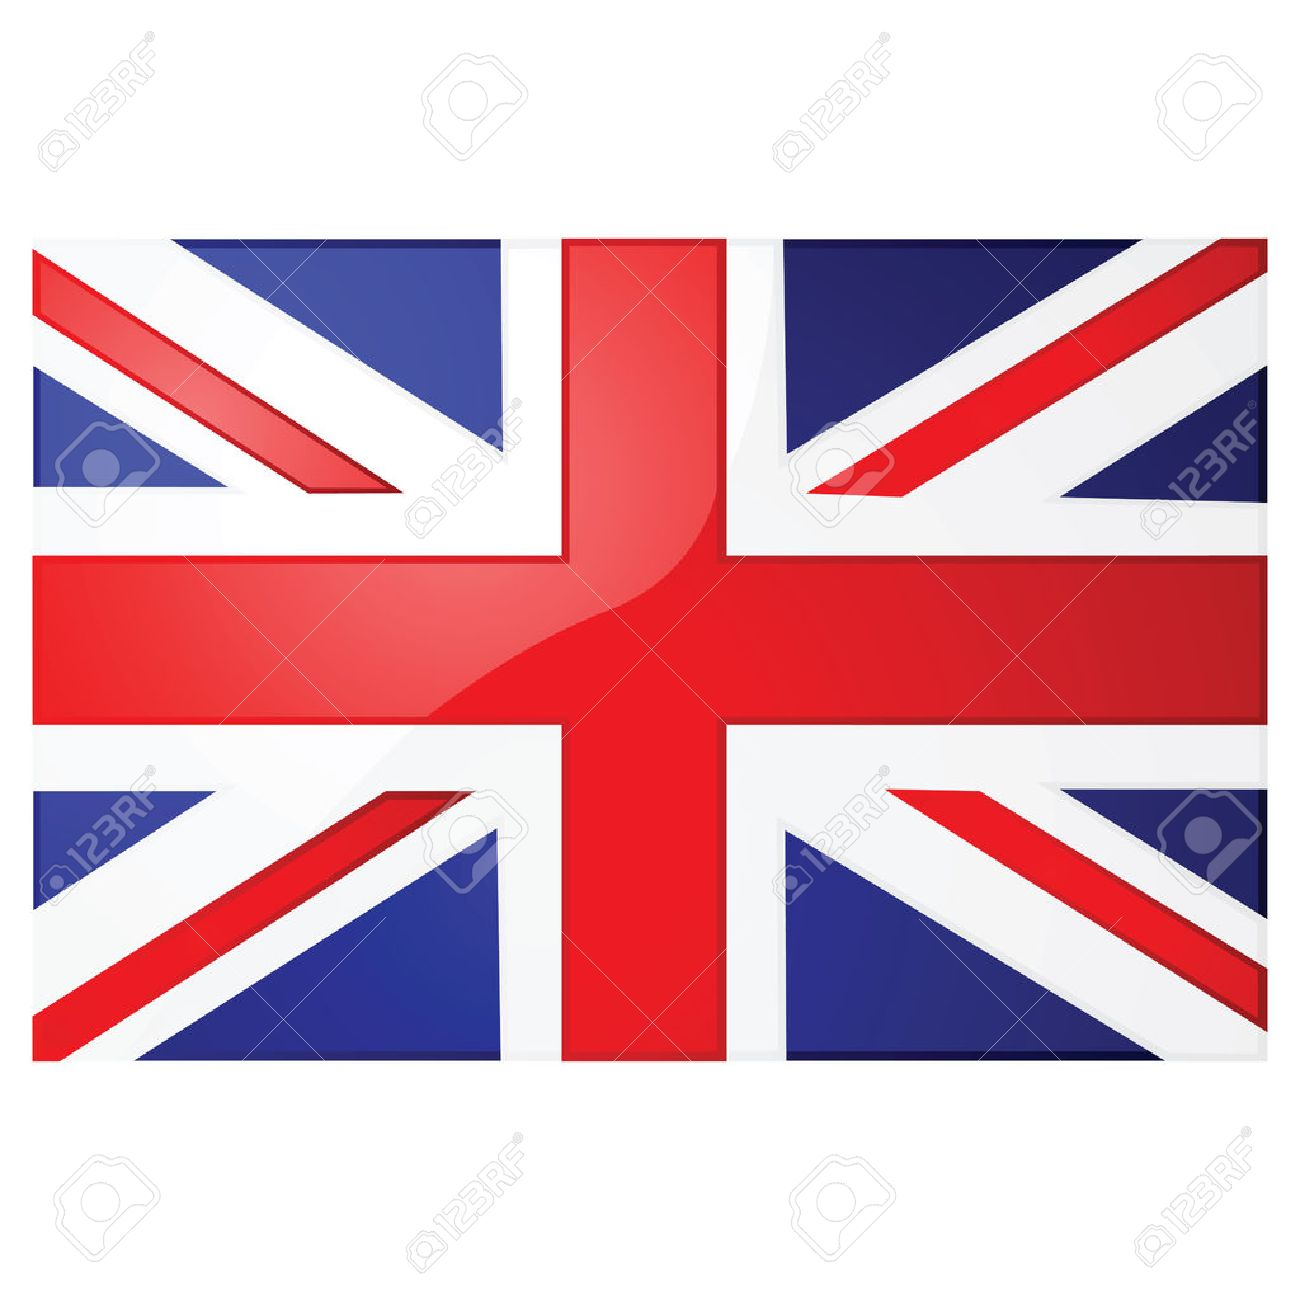 1300x1300 Highest Pic Of British Flag Drawing The Union